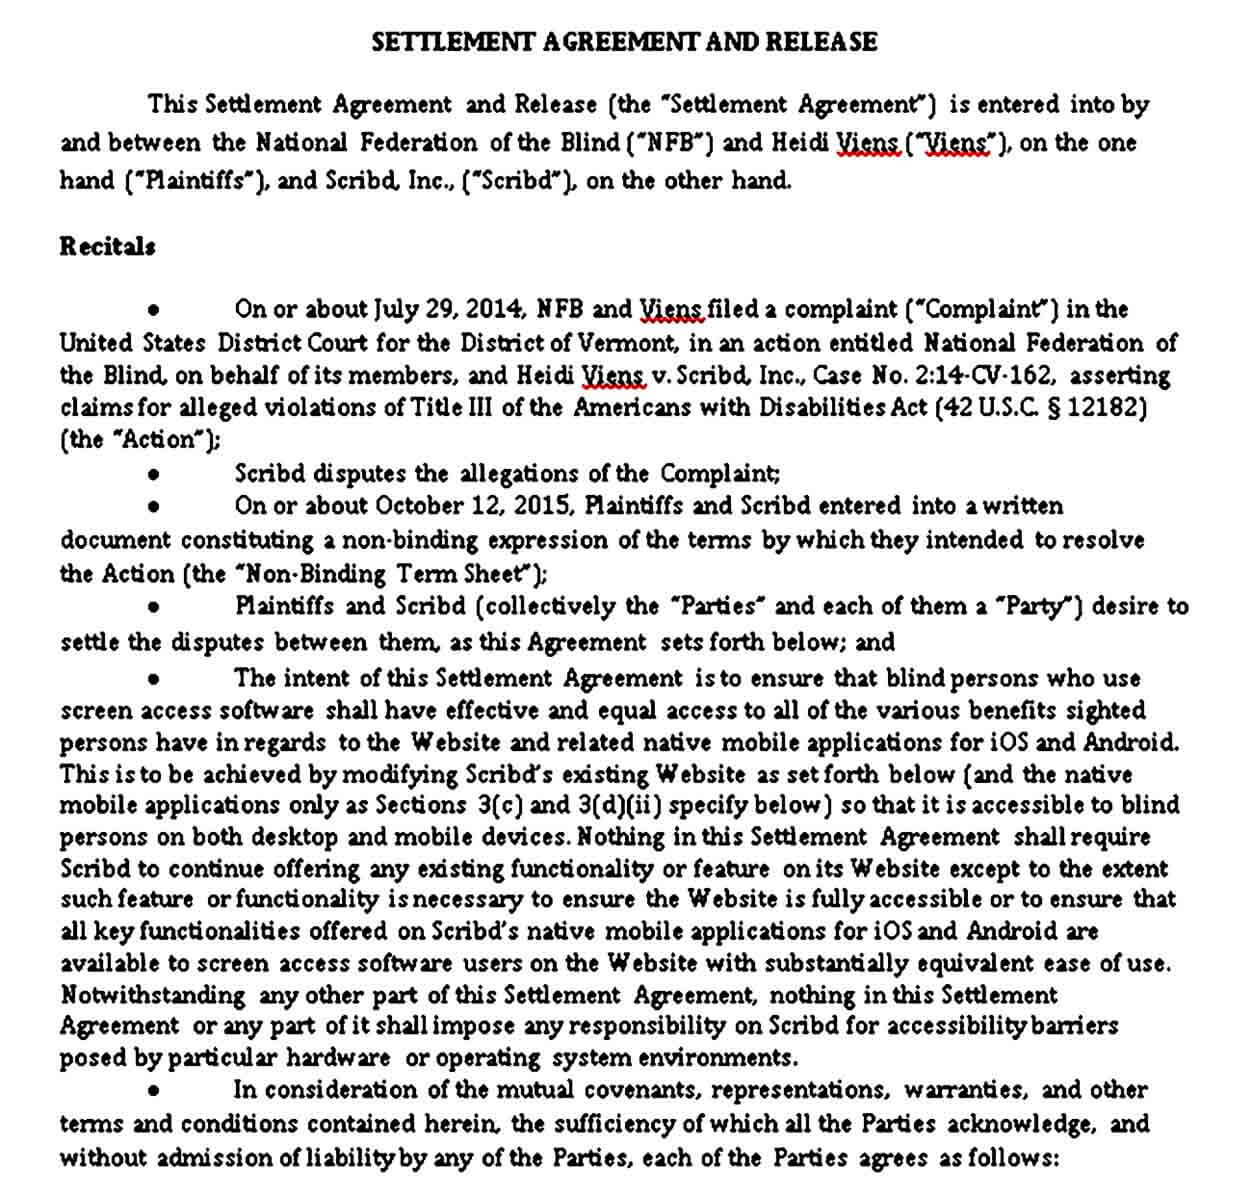 Settlement Agreement and Release Template